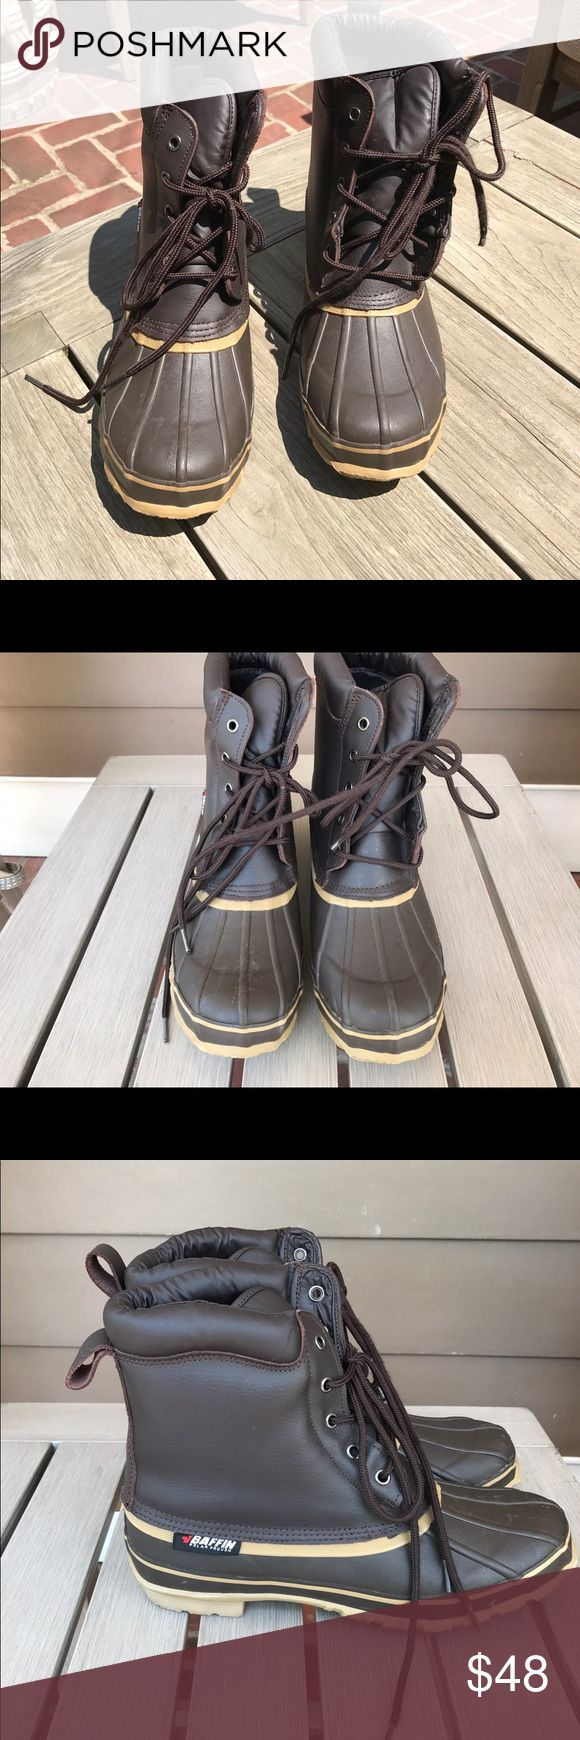 Baffin Men's Steel Shank Boots Stay safe & warm in these Men's Baffin Polar Series Steel Shank boot. This is a great boot for those cold weather months or wet rainy days. They are in brand new like condition. Please look at pictures for all the fine details Baffin Shoes Boots